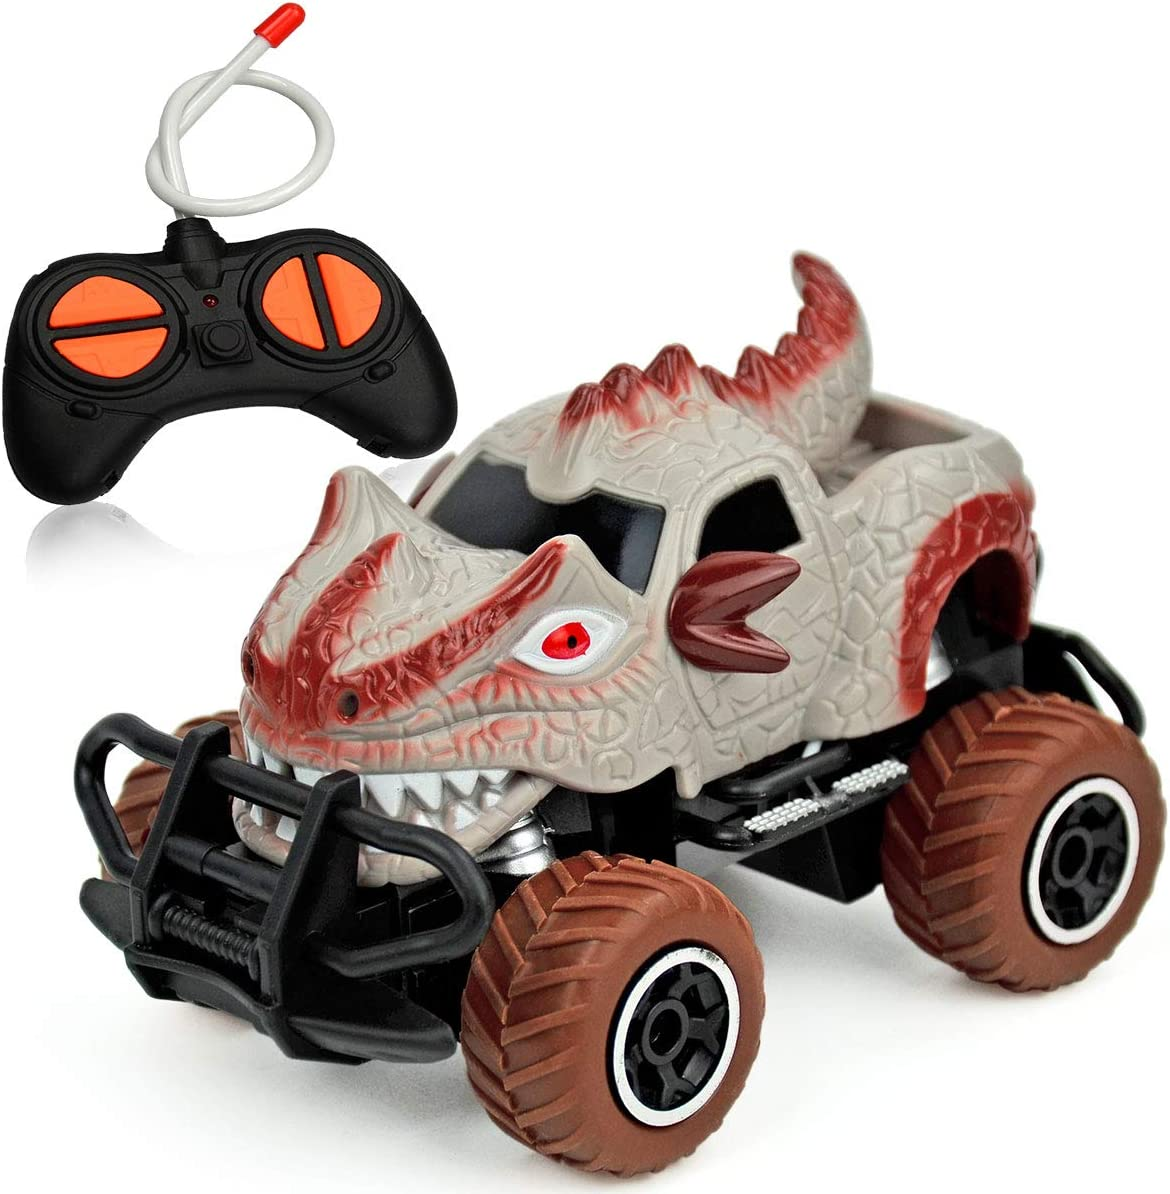 Free Amazon Promo Code 2020 for RC Monster Truck